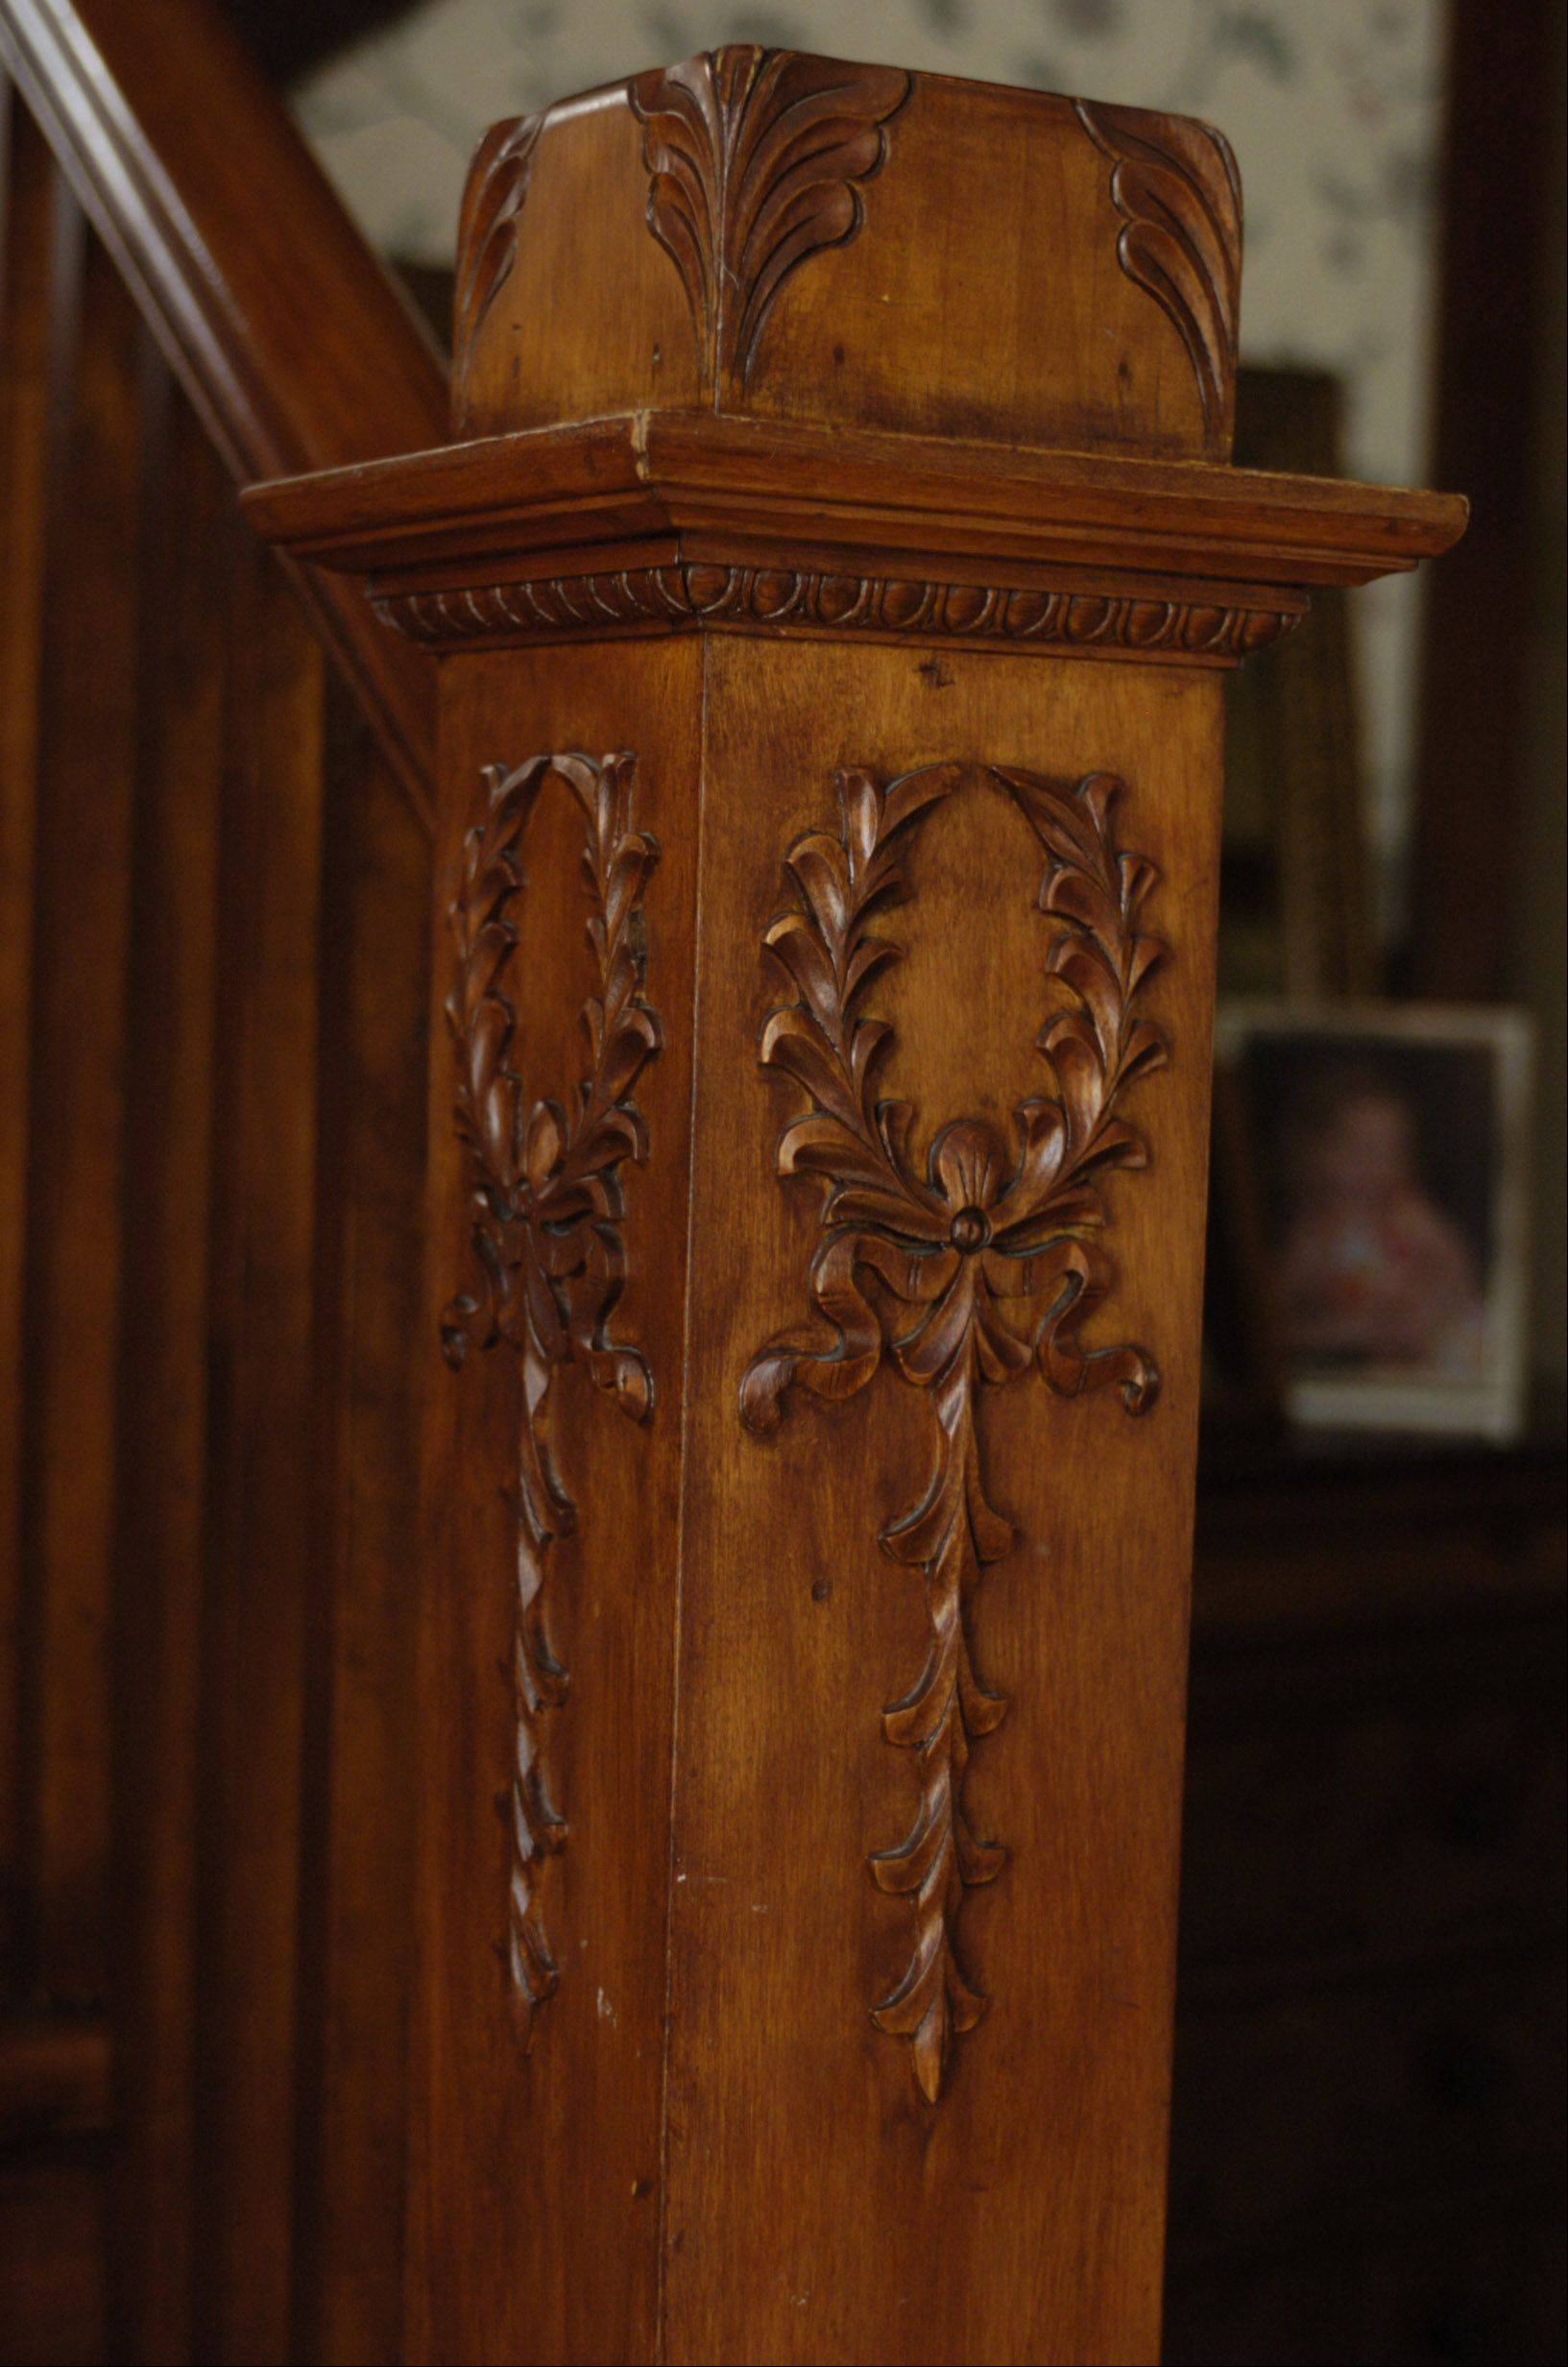 The woodwork is one of the impressive features of Jessica and Mike Braun's home.